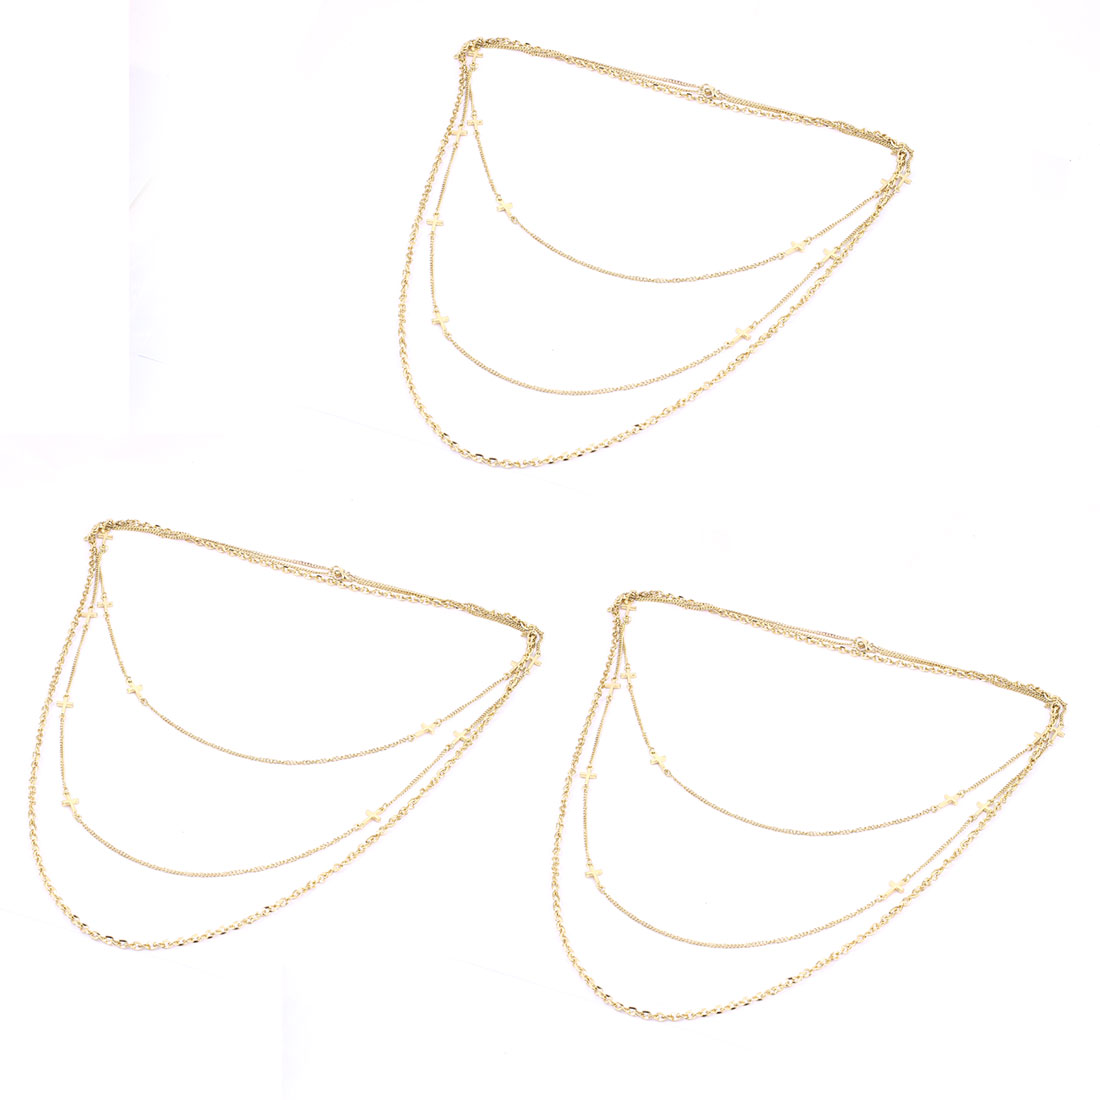 3 Pcs Gold Tone Metal Lobster Buckle Strip Link Slim Chain Necklaces Neckwear Collar for Ladies Women